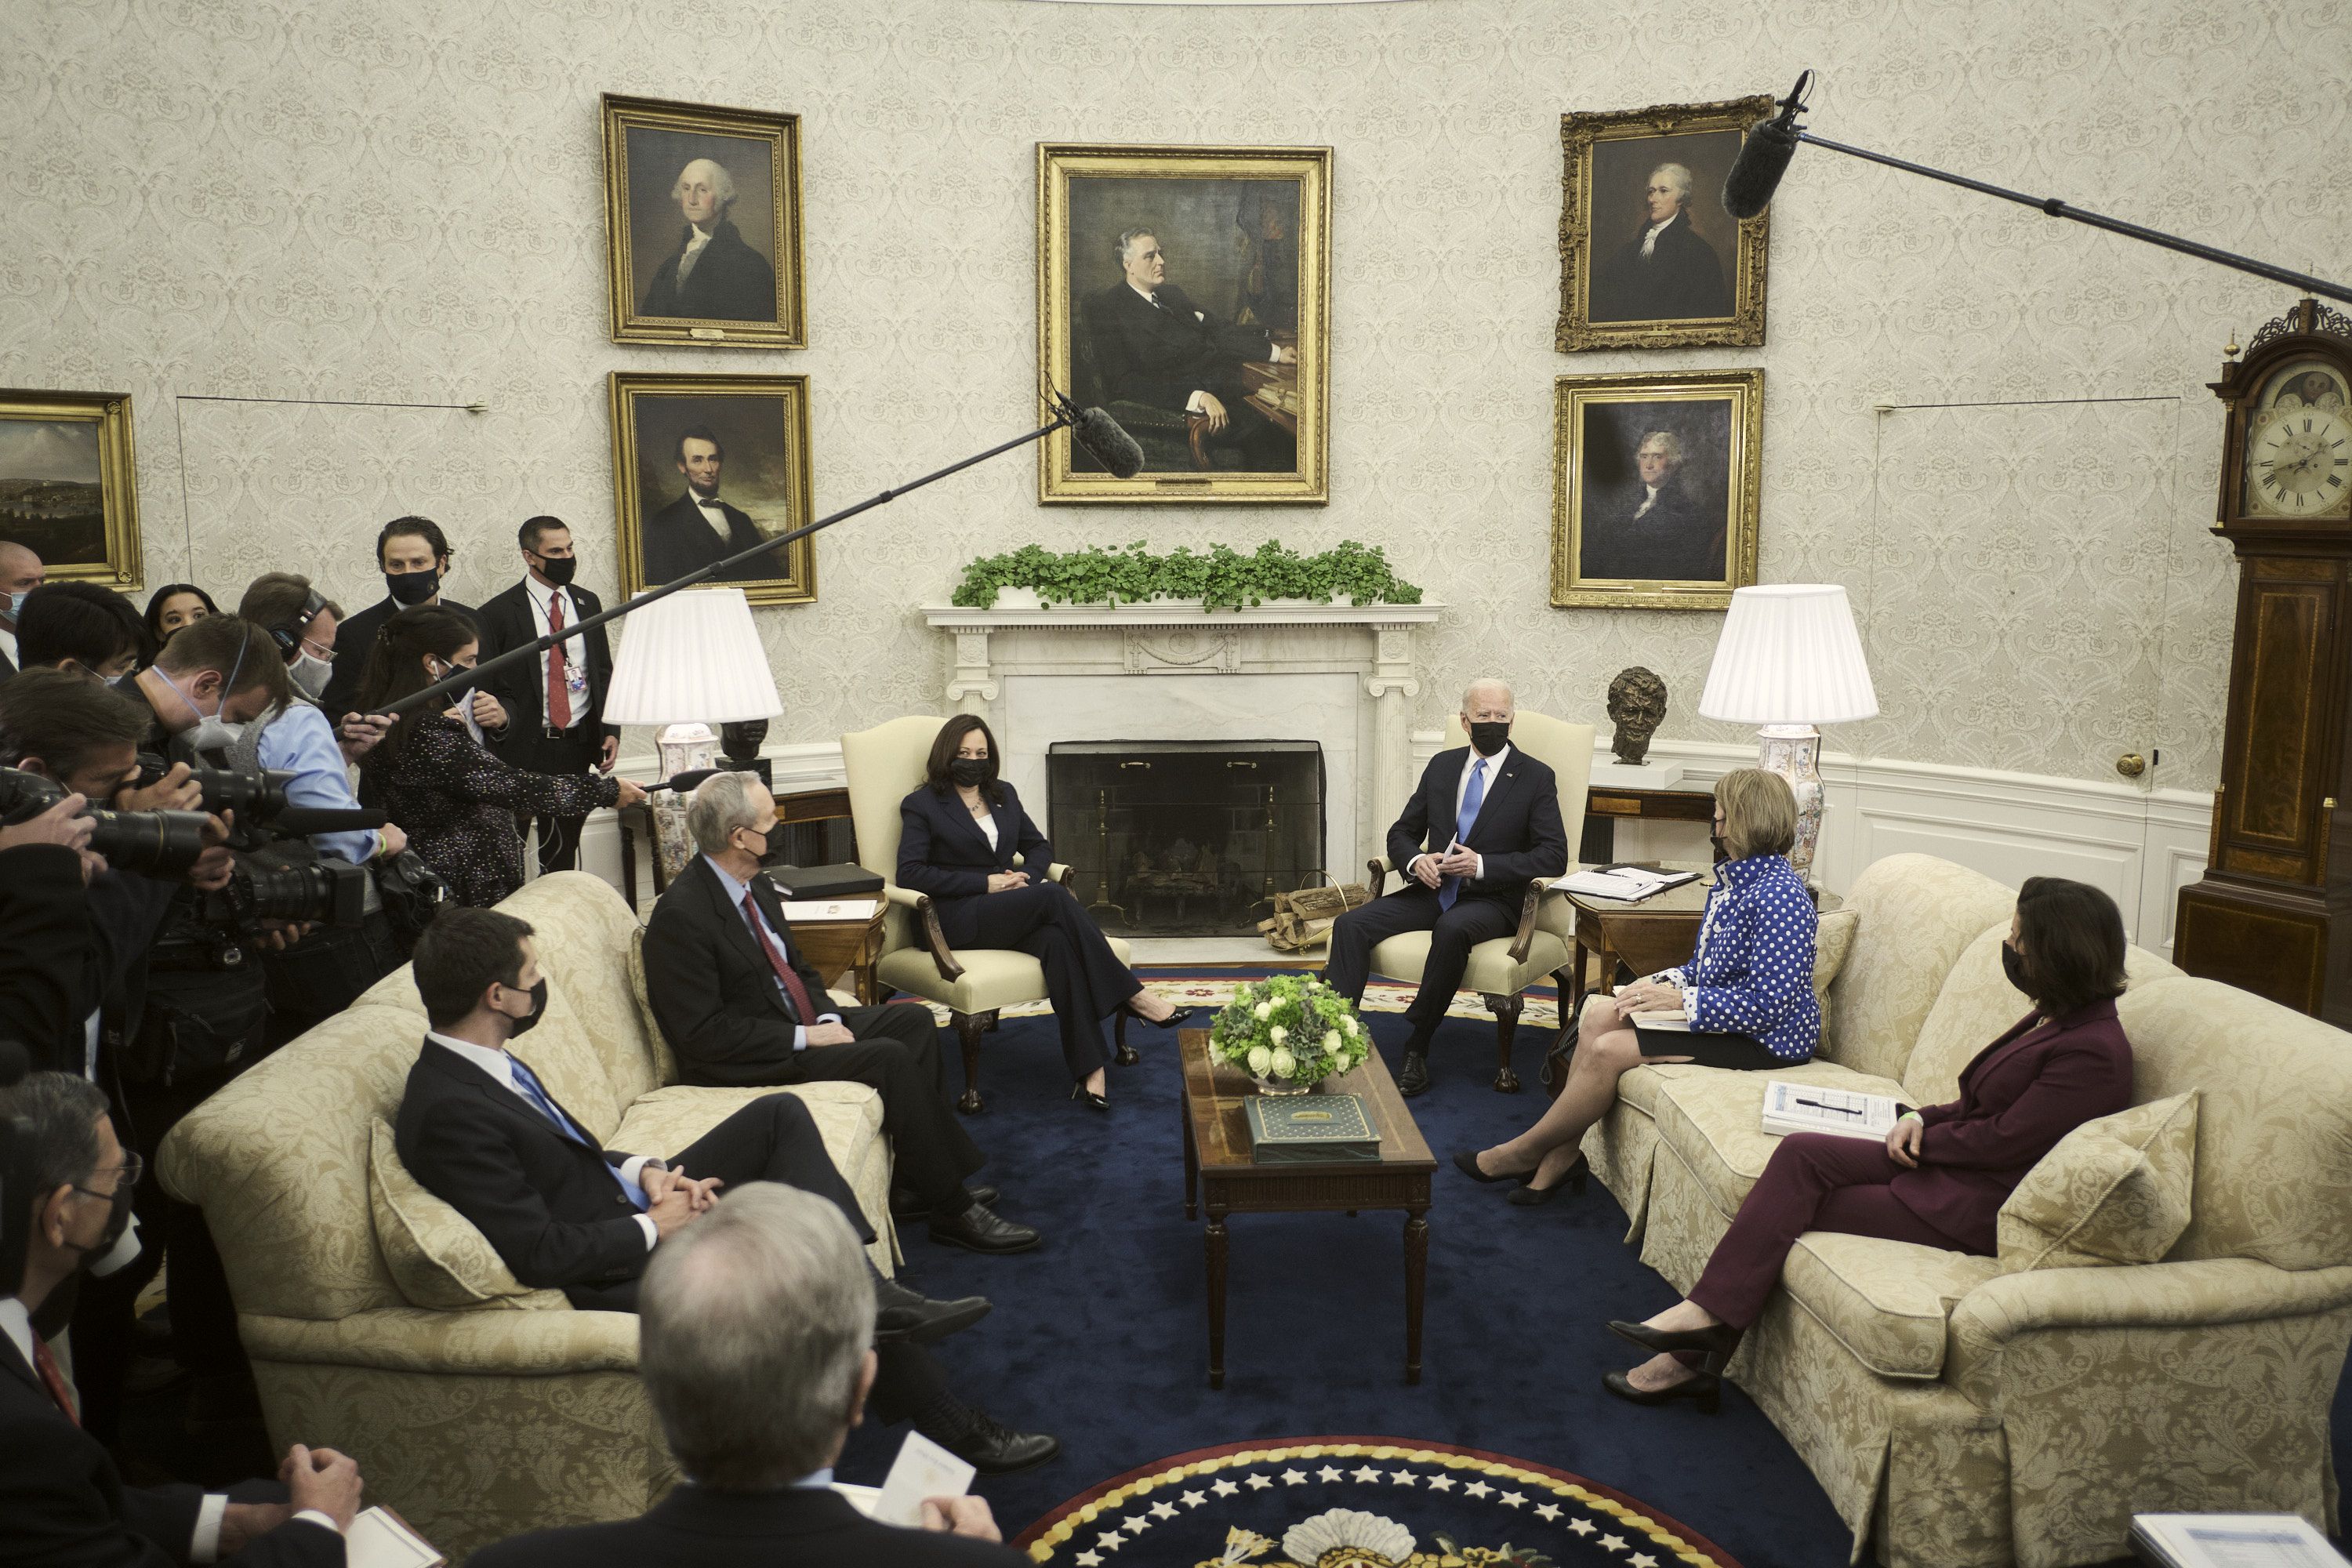 US President Joe Biden, center right, wears a protective mask while speaking during a meeting in the Oval Office of the White House in Washington, DC, on May 13, 2021.